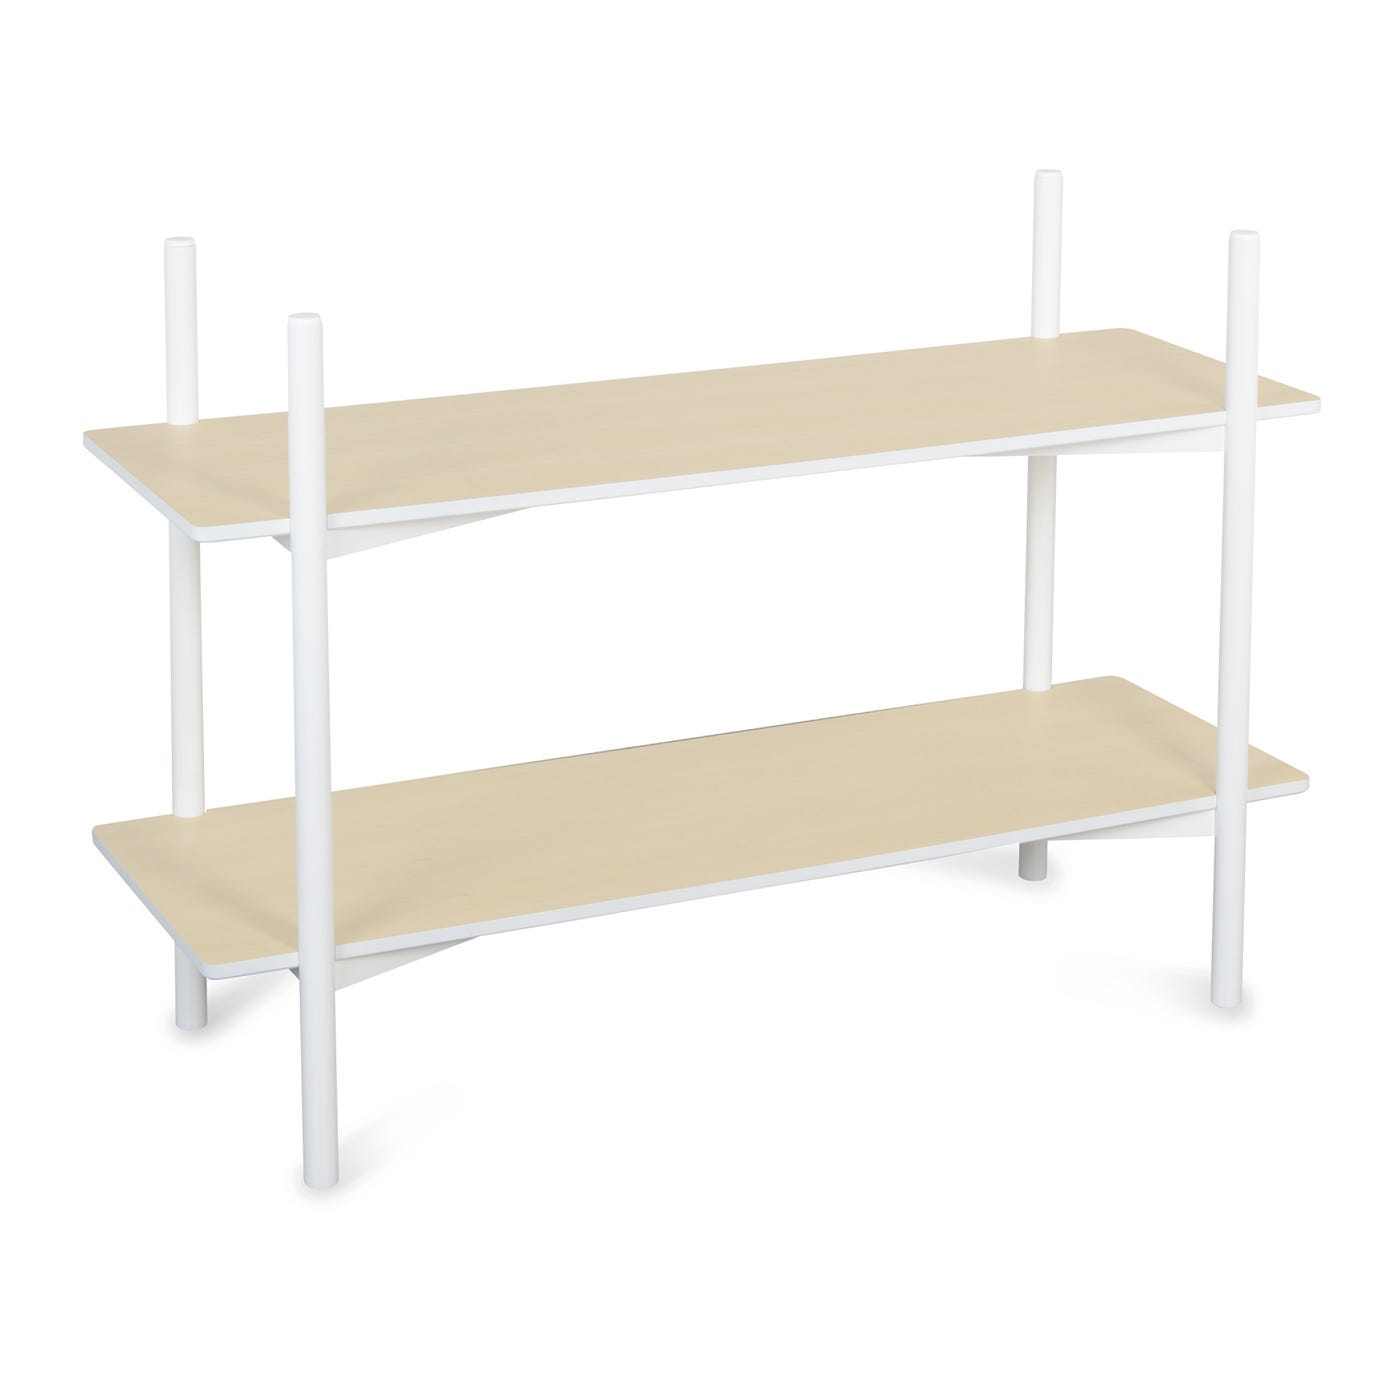 Heal's Dodie Ash Two Shelf Shelving Unit White Lacquer